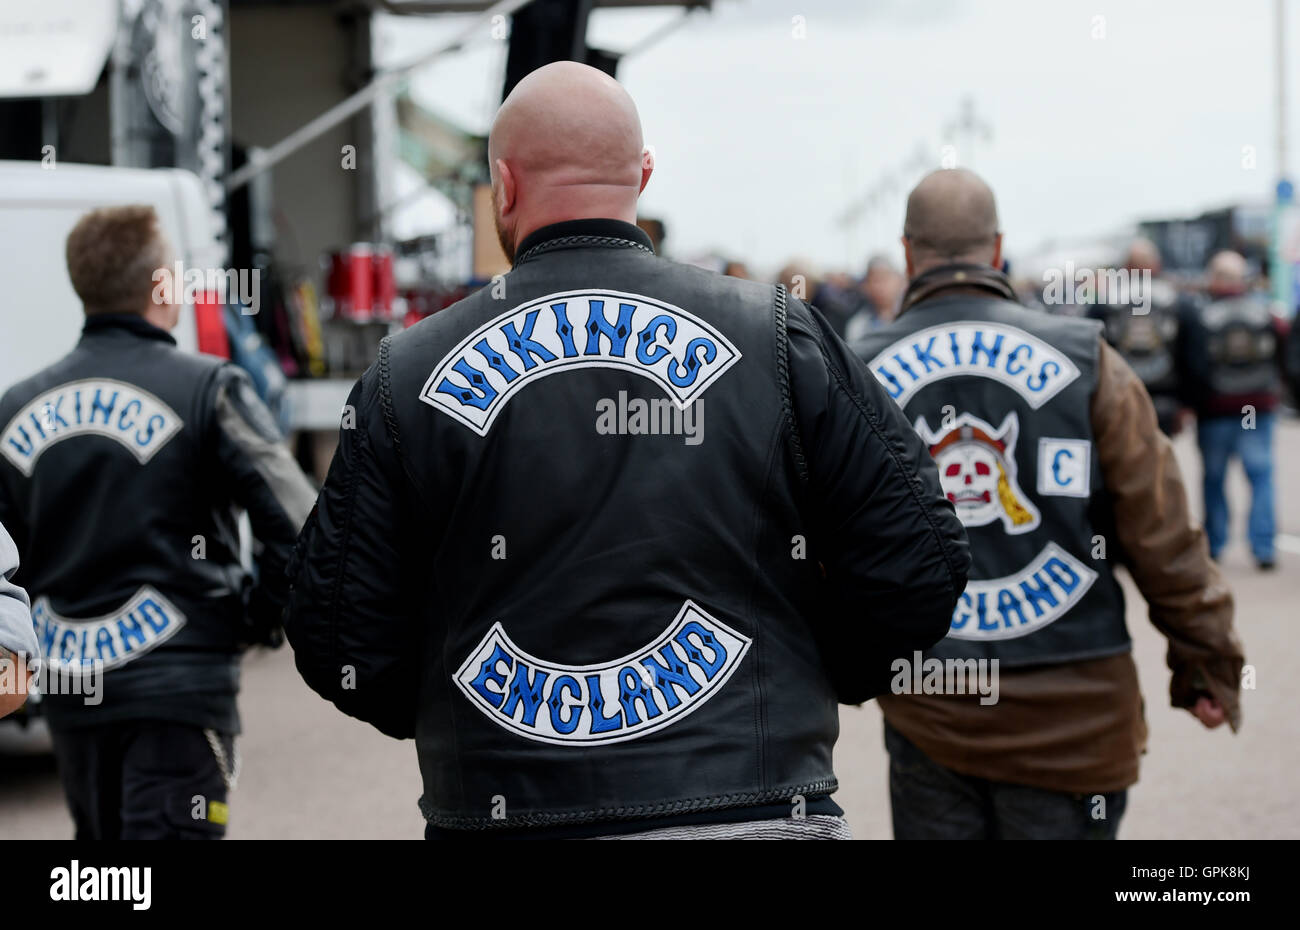 Hells Angels Uk Stock Photos & Hells Angels Uk Stock Images